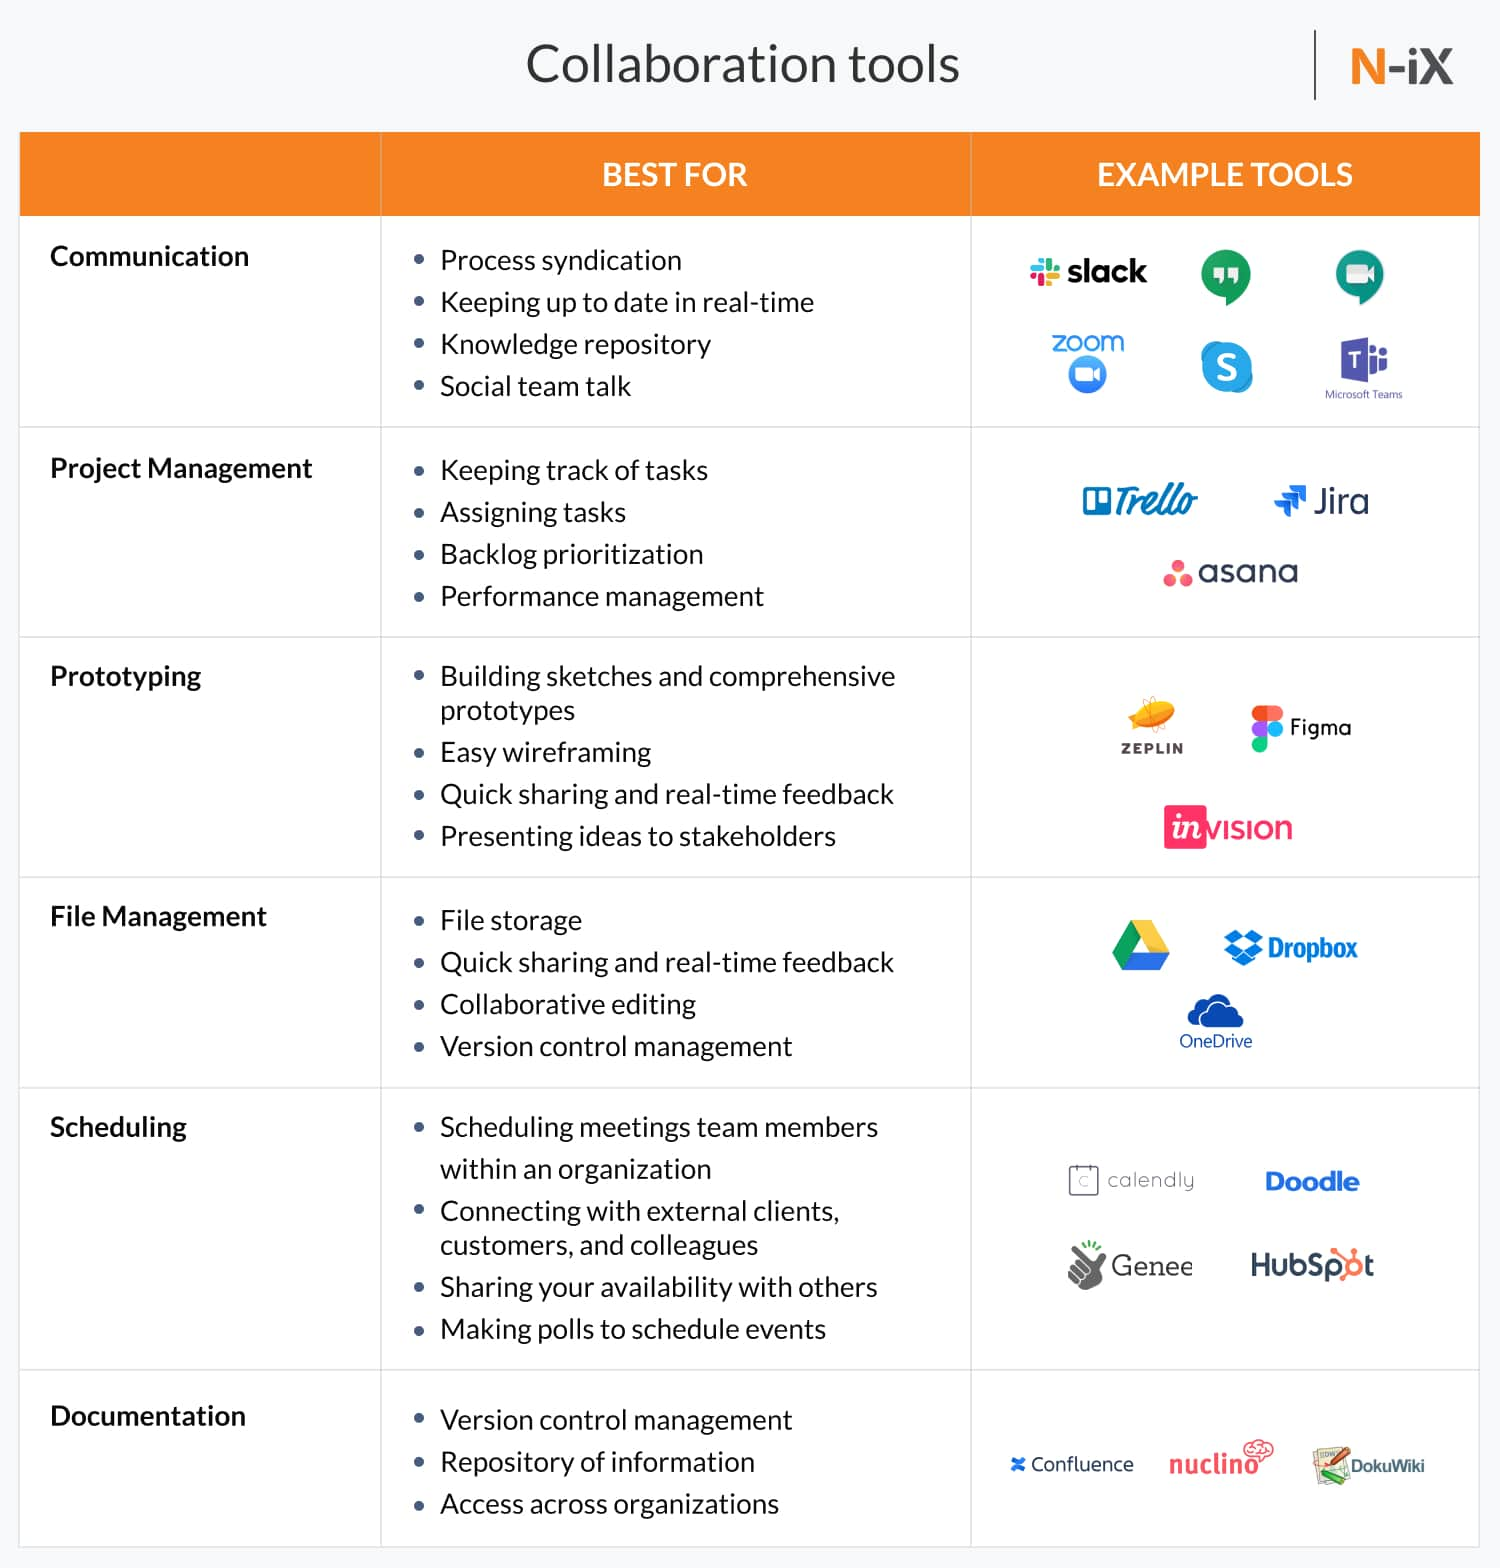 collaboration tools that help with Agile software development